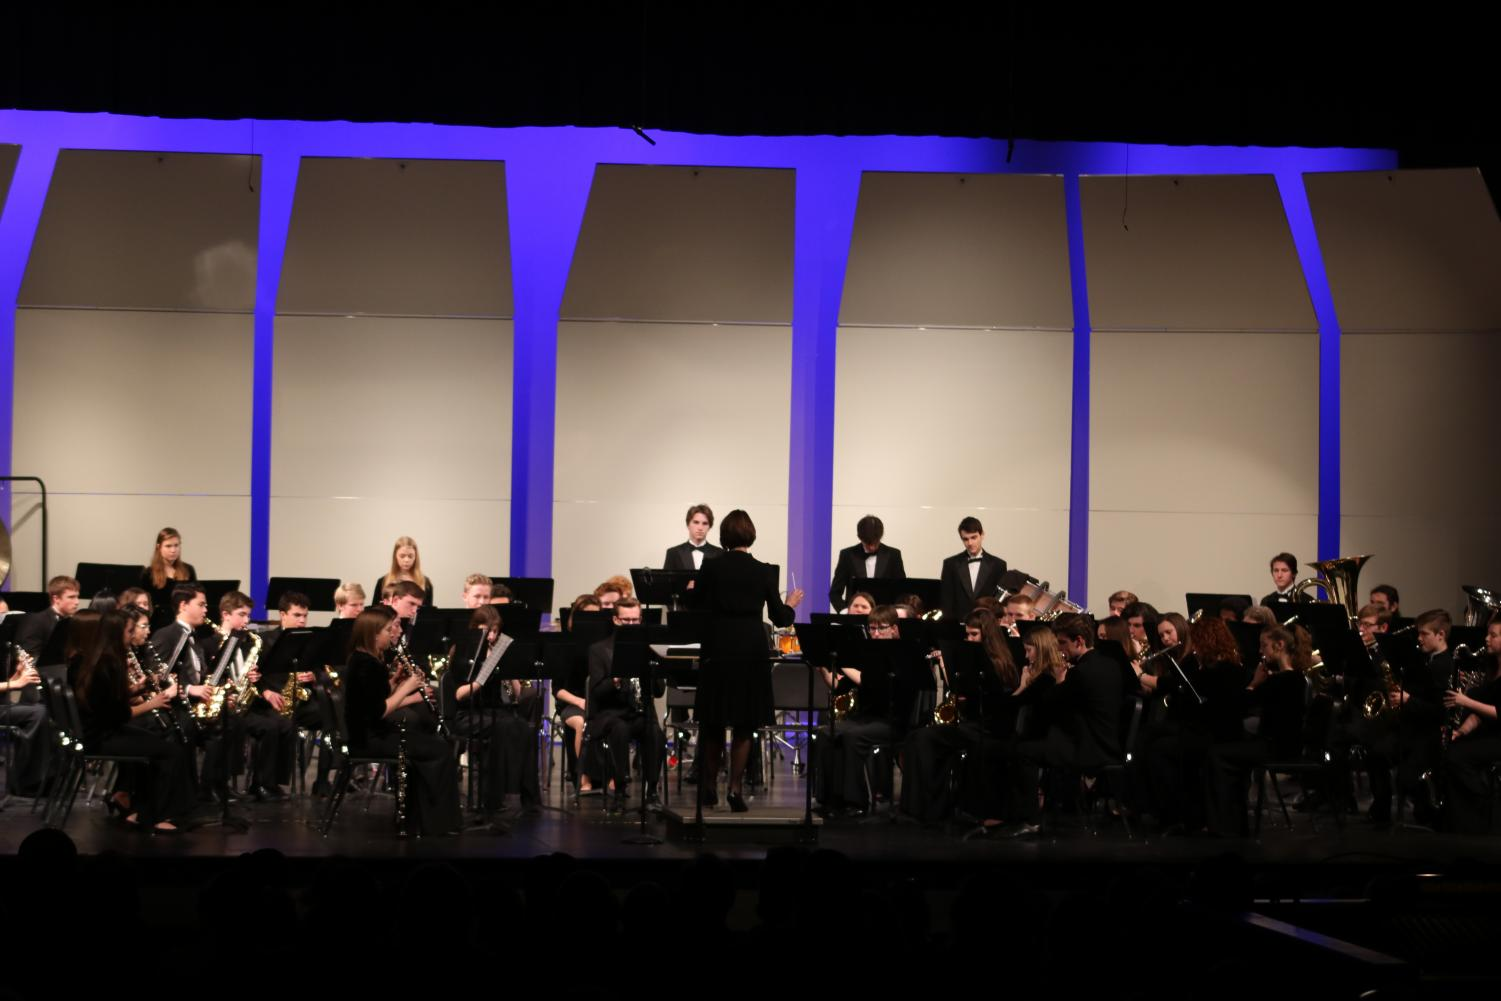 KHS+band+plays+a+song+during+the+band+concert.